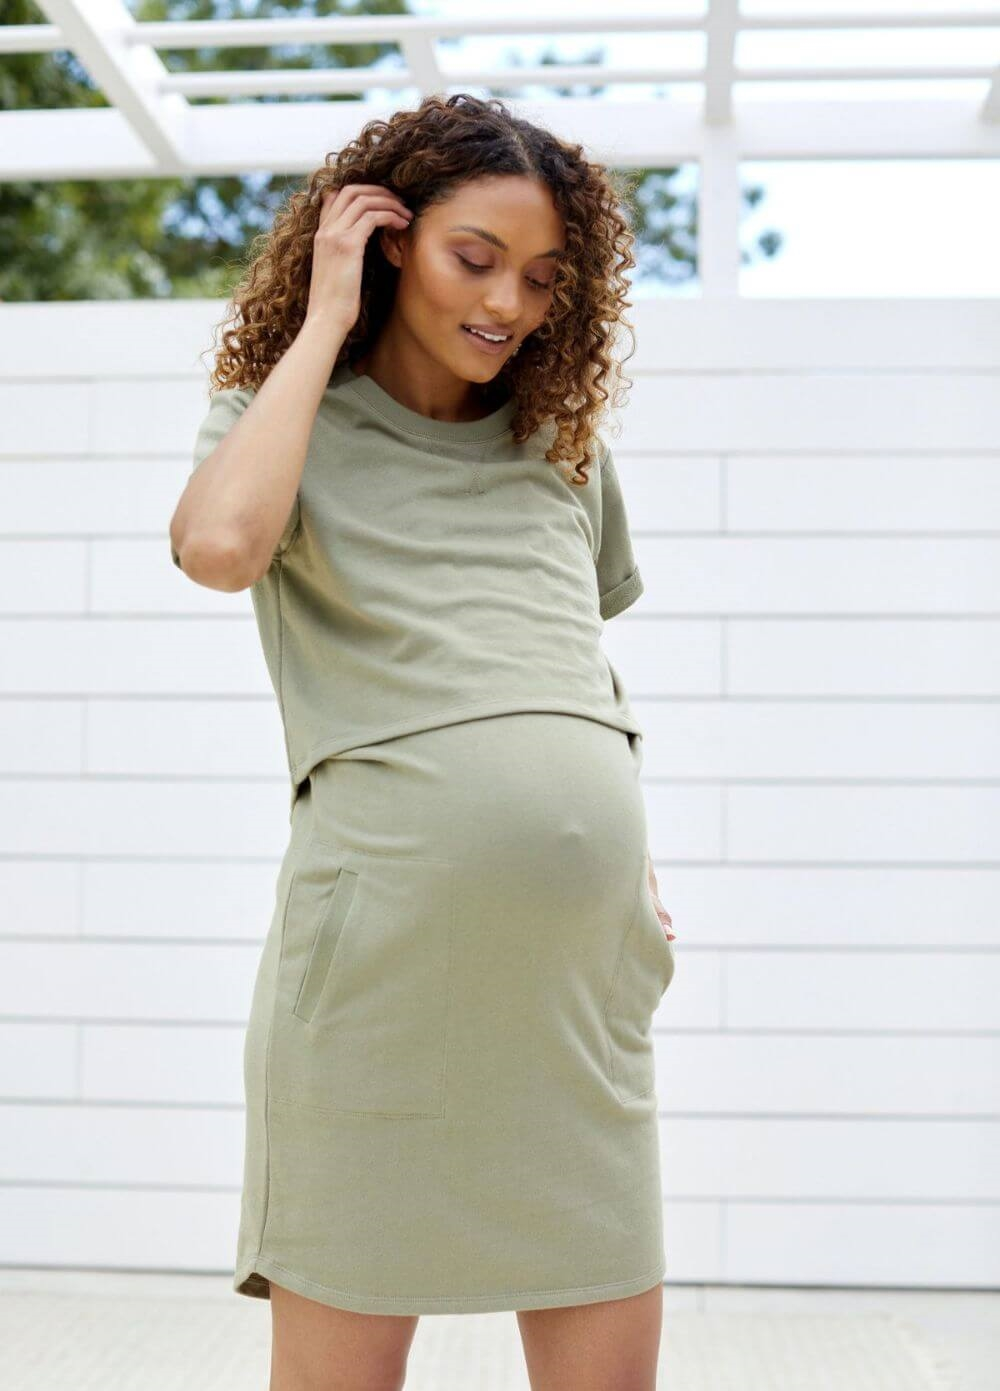 Bae - Take It Easy Nursing Tee Dress in Khaki